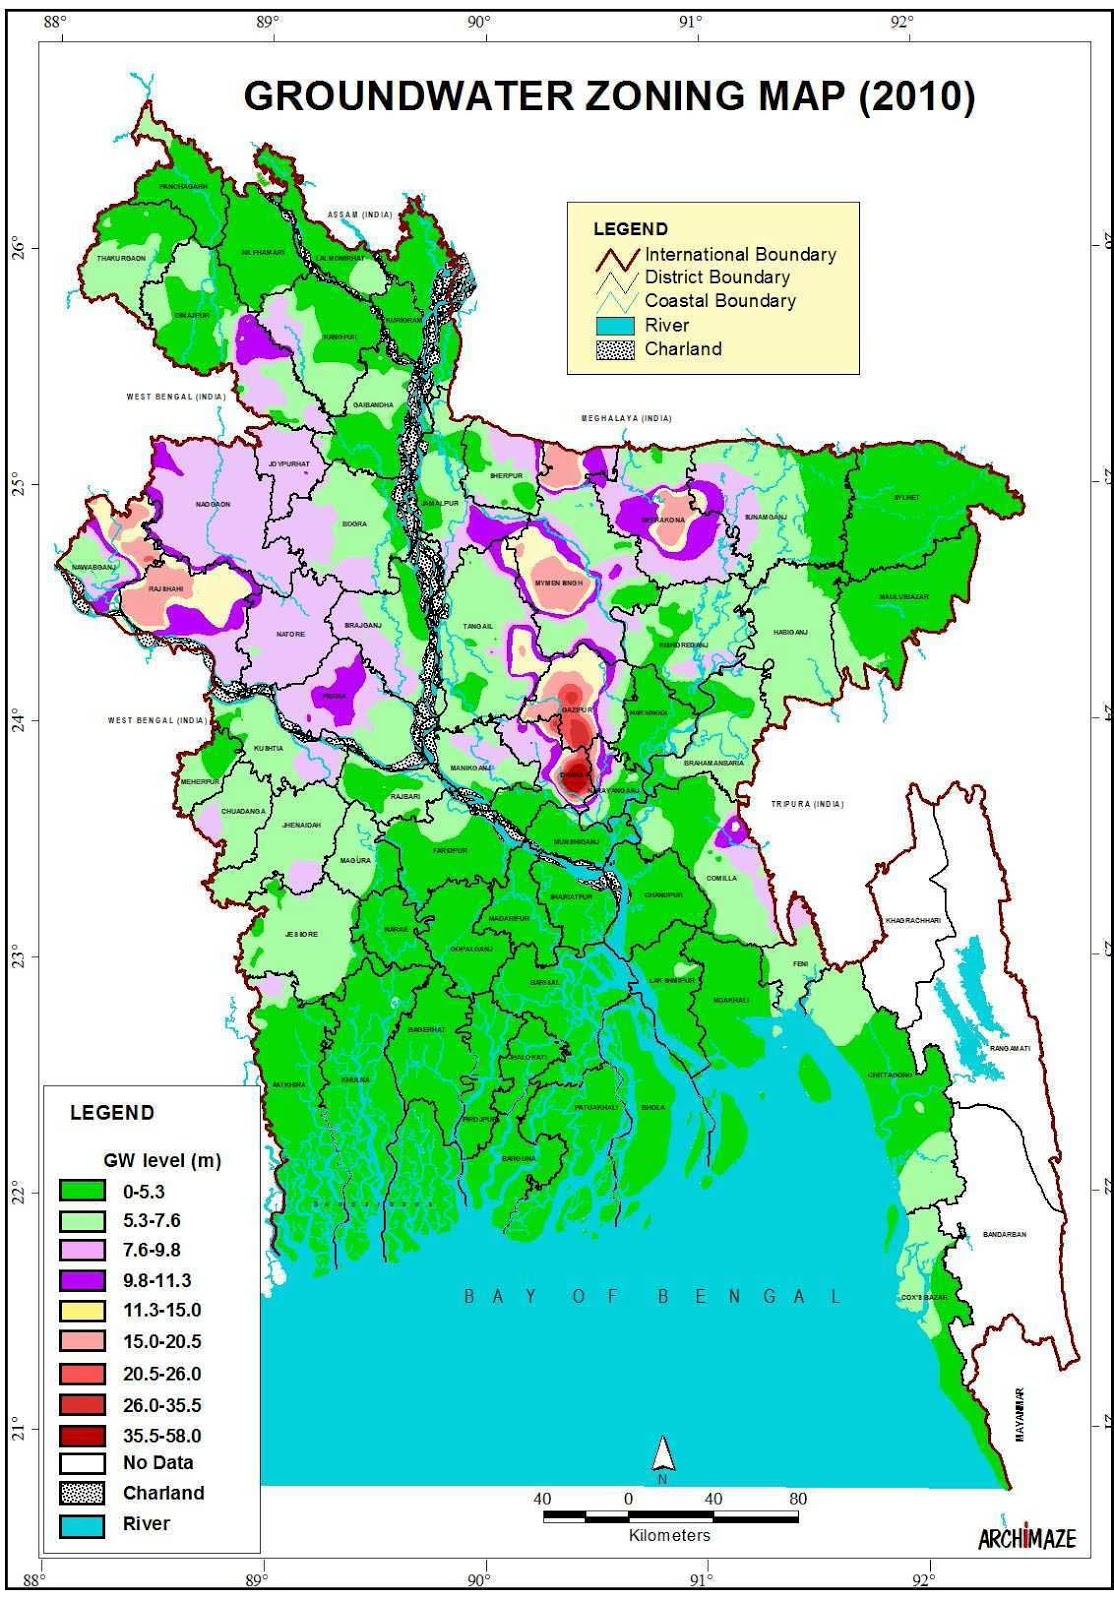 Groundwater Zoning Map Bangladesh (2010)